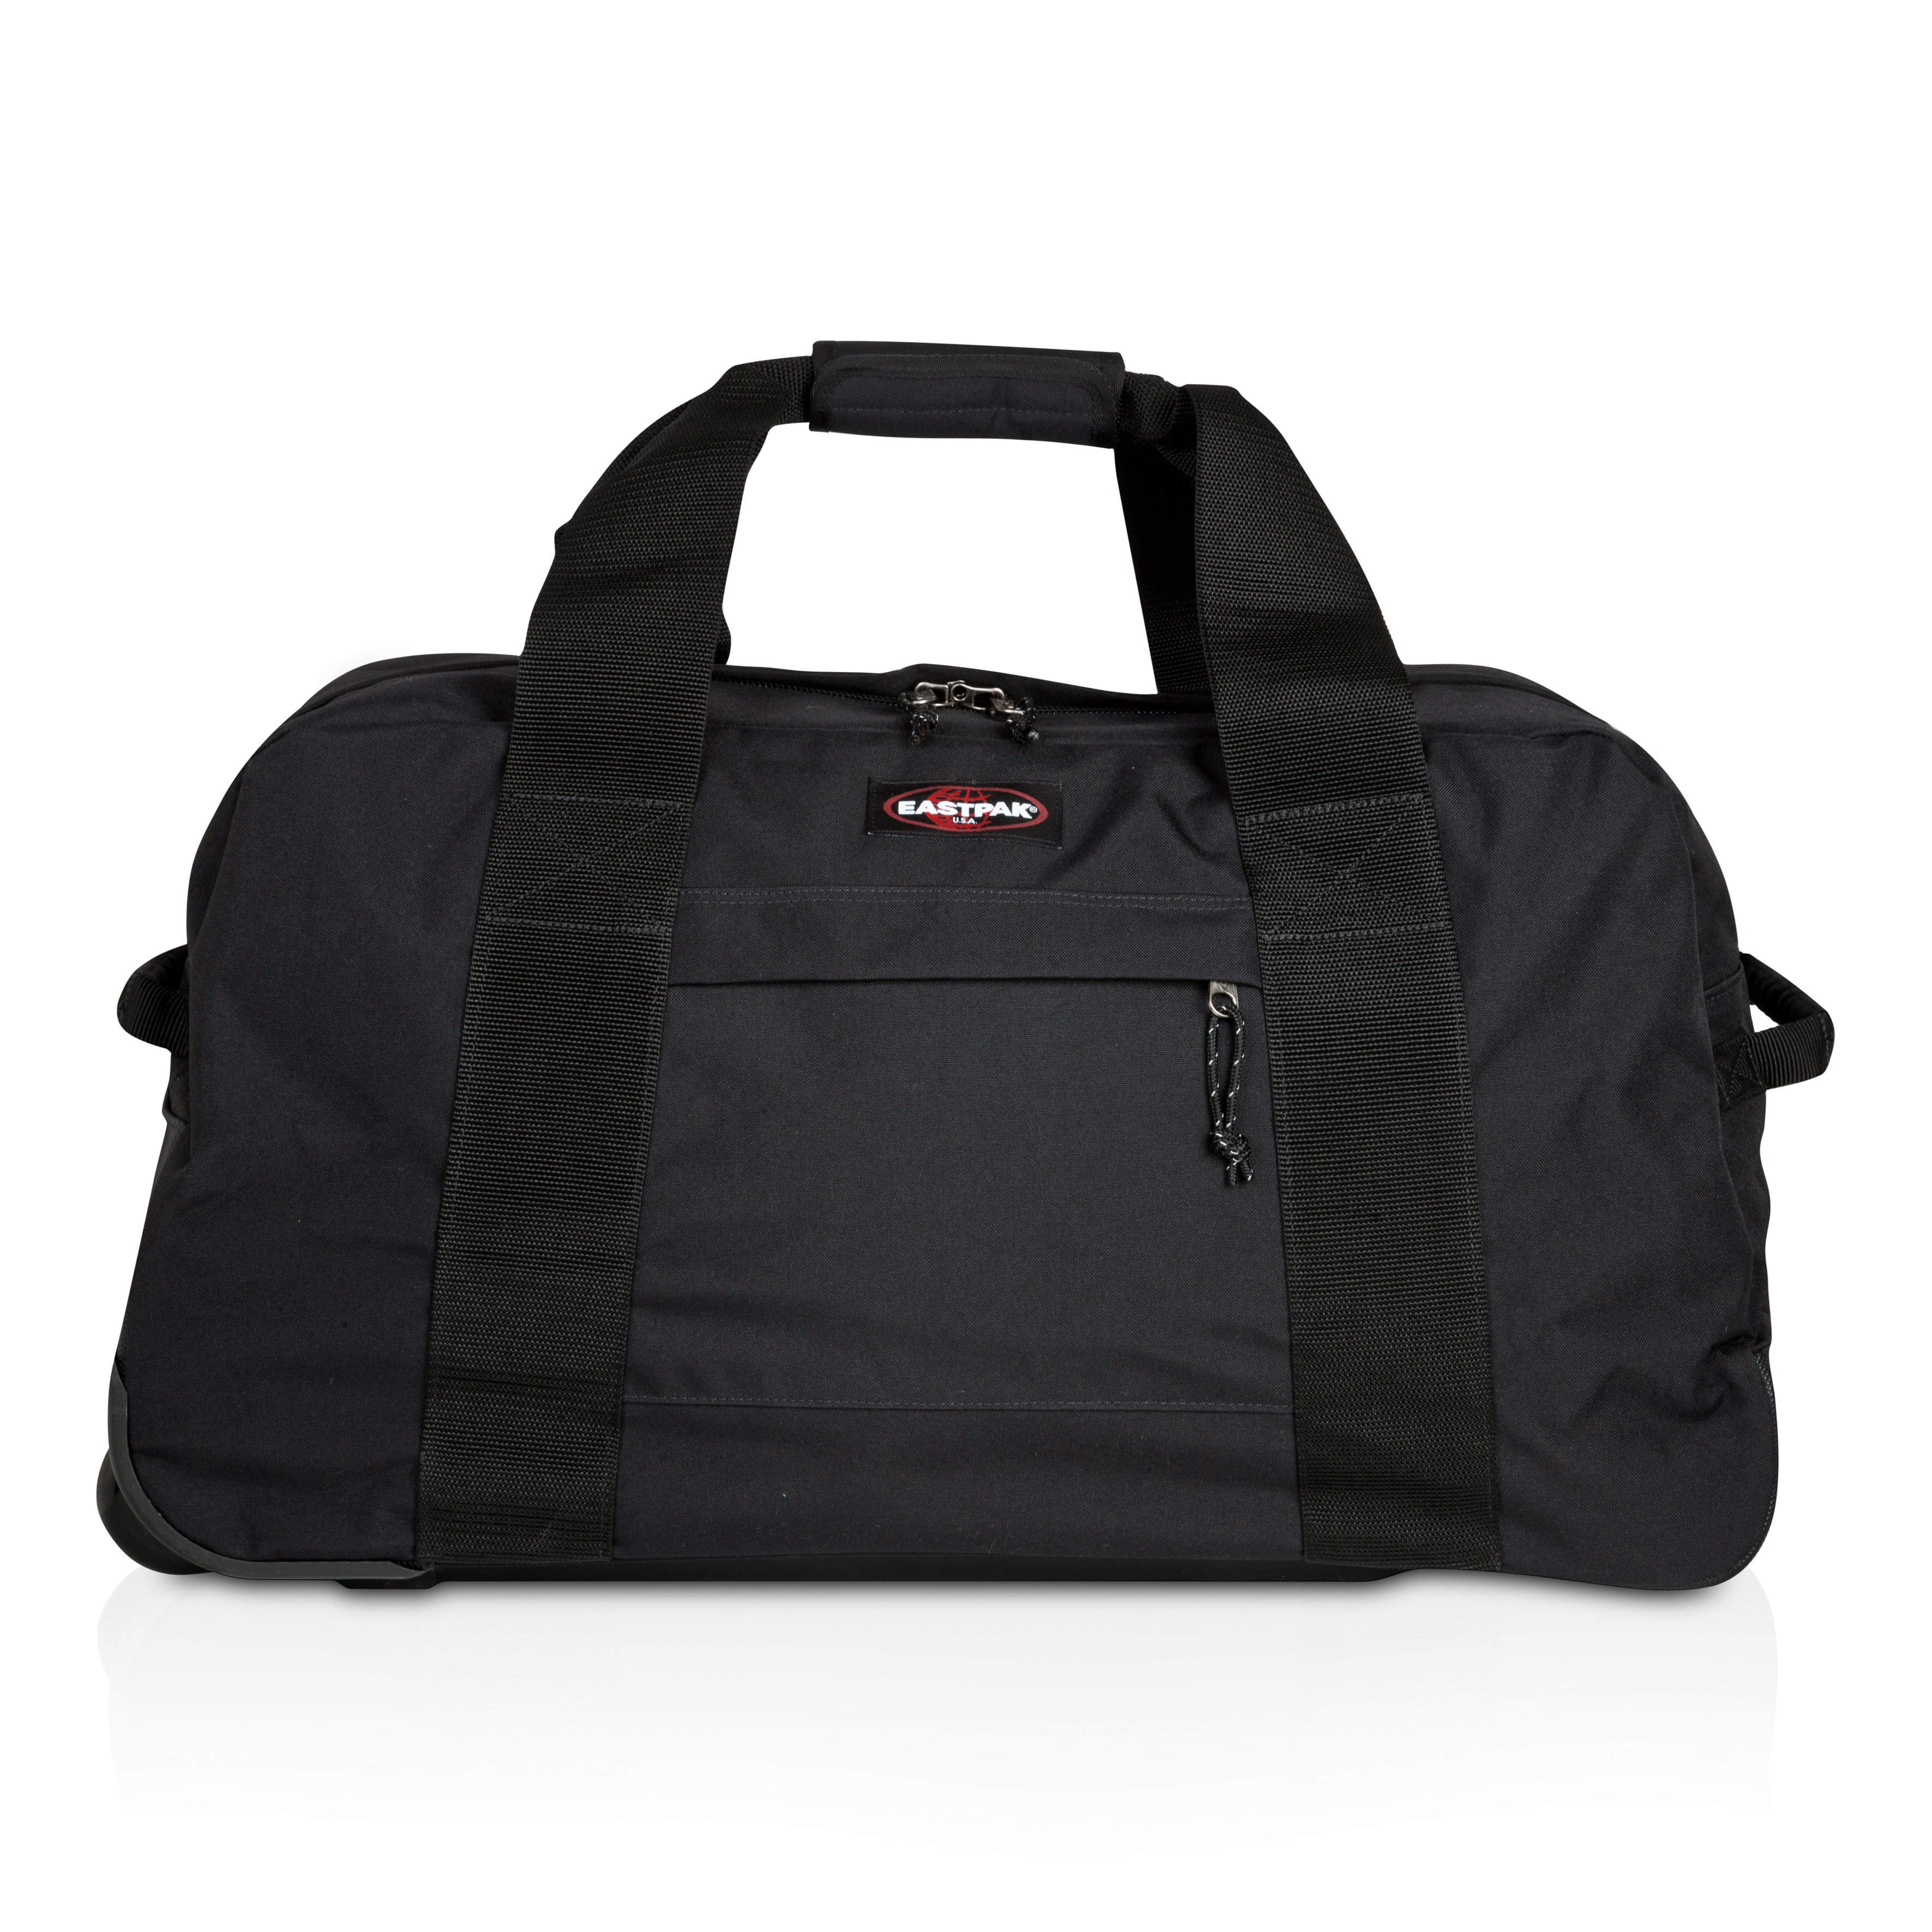 Eastpak Container 65 Wheeled Holdall - Black